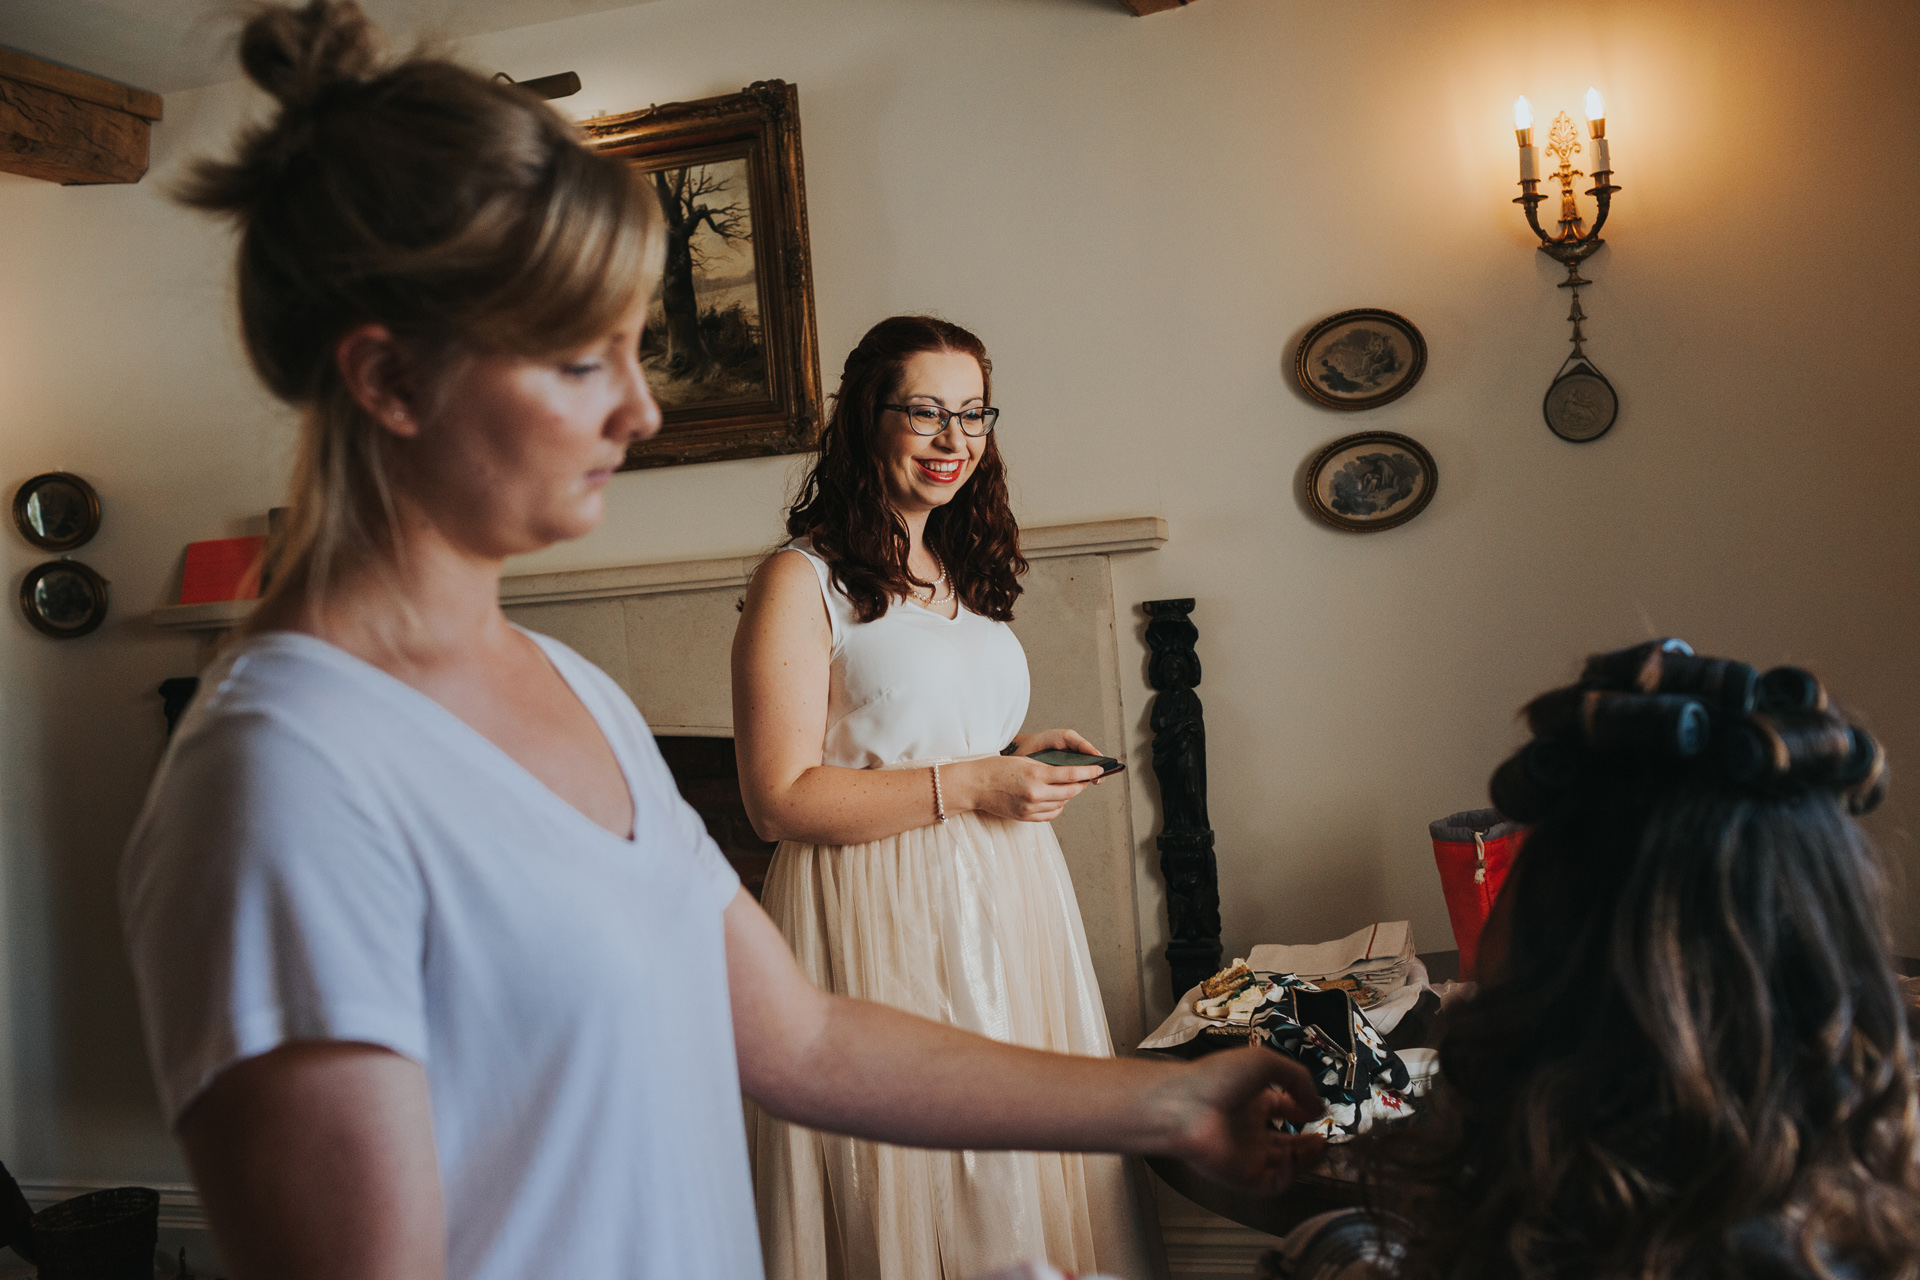 The bridesmaid looks on smiling as the bride has her finishing touches done.